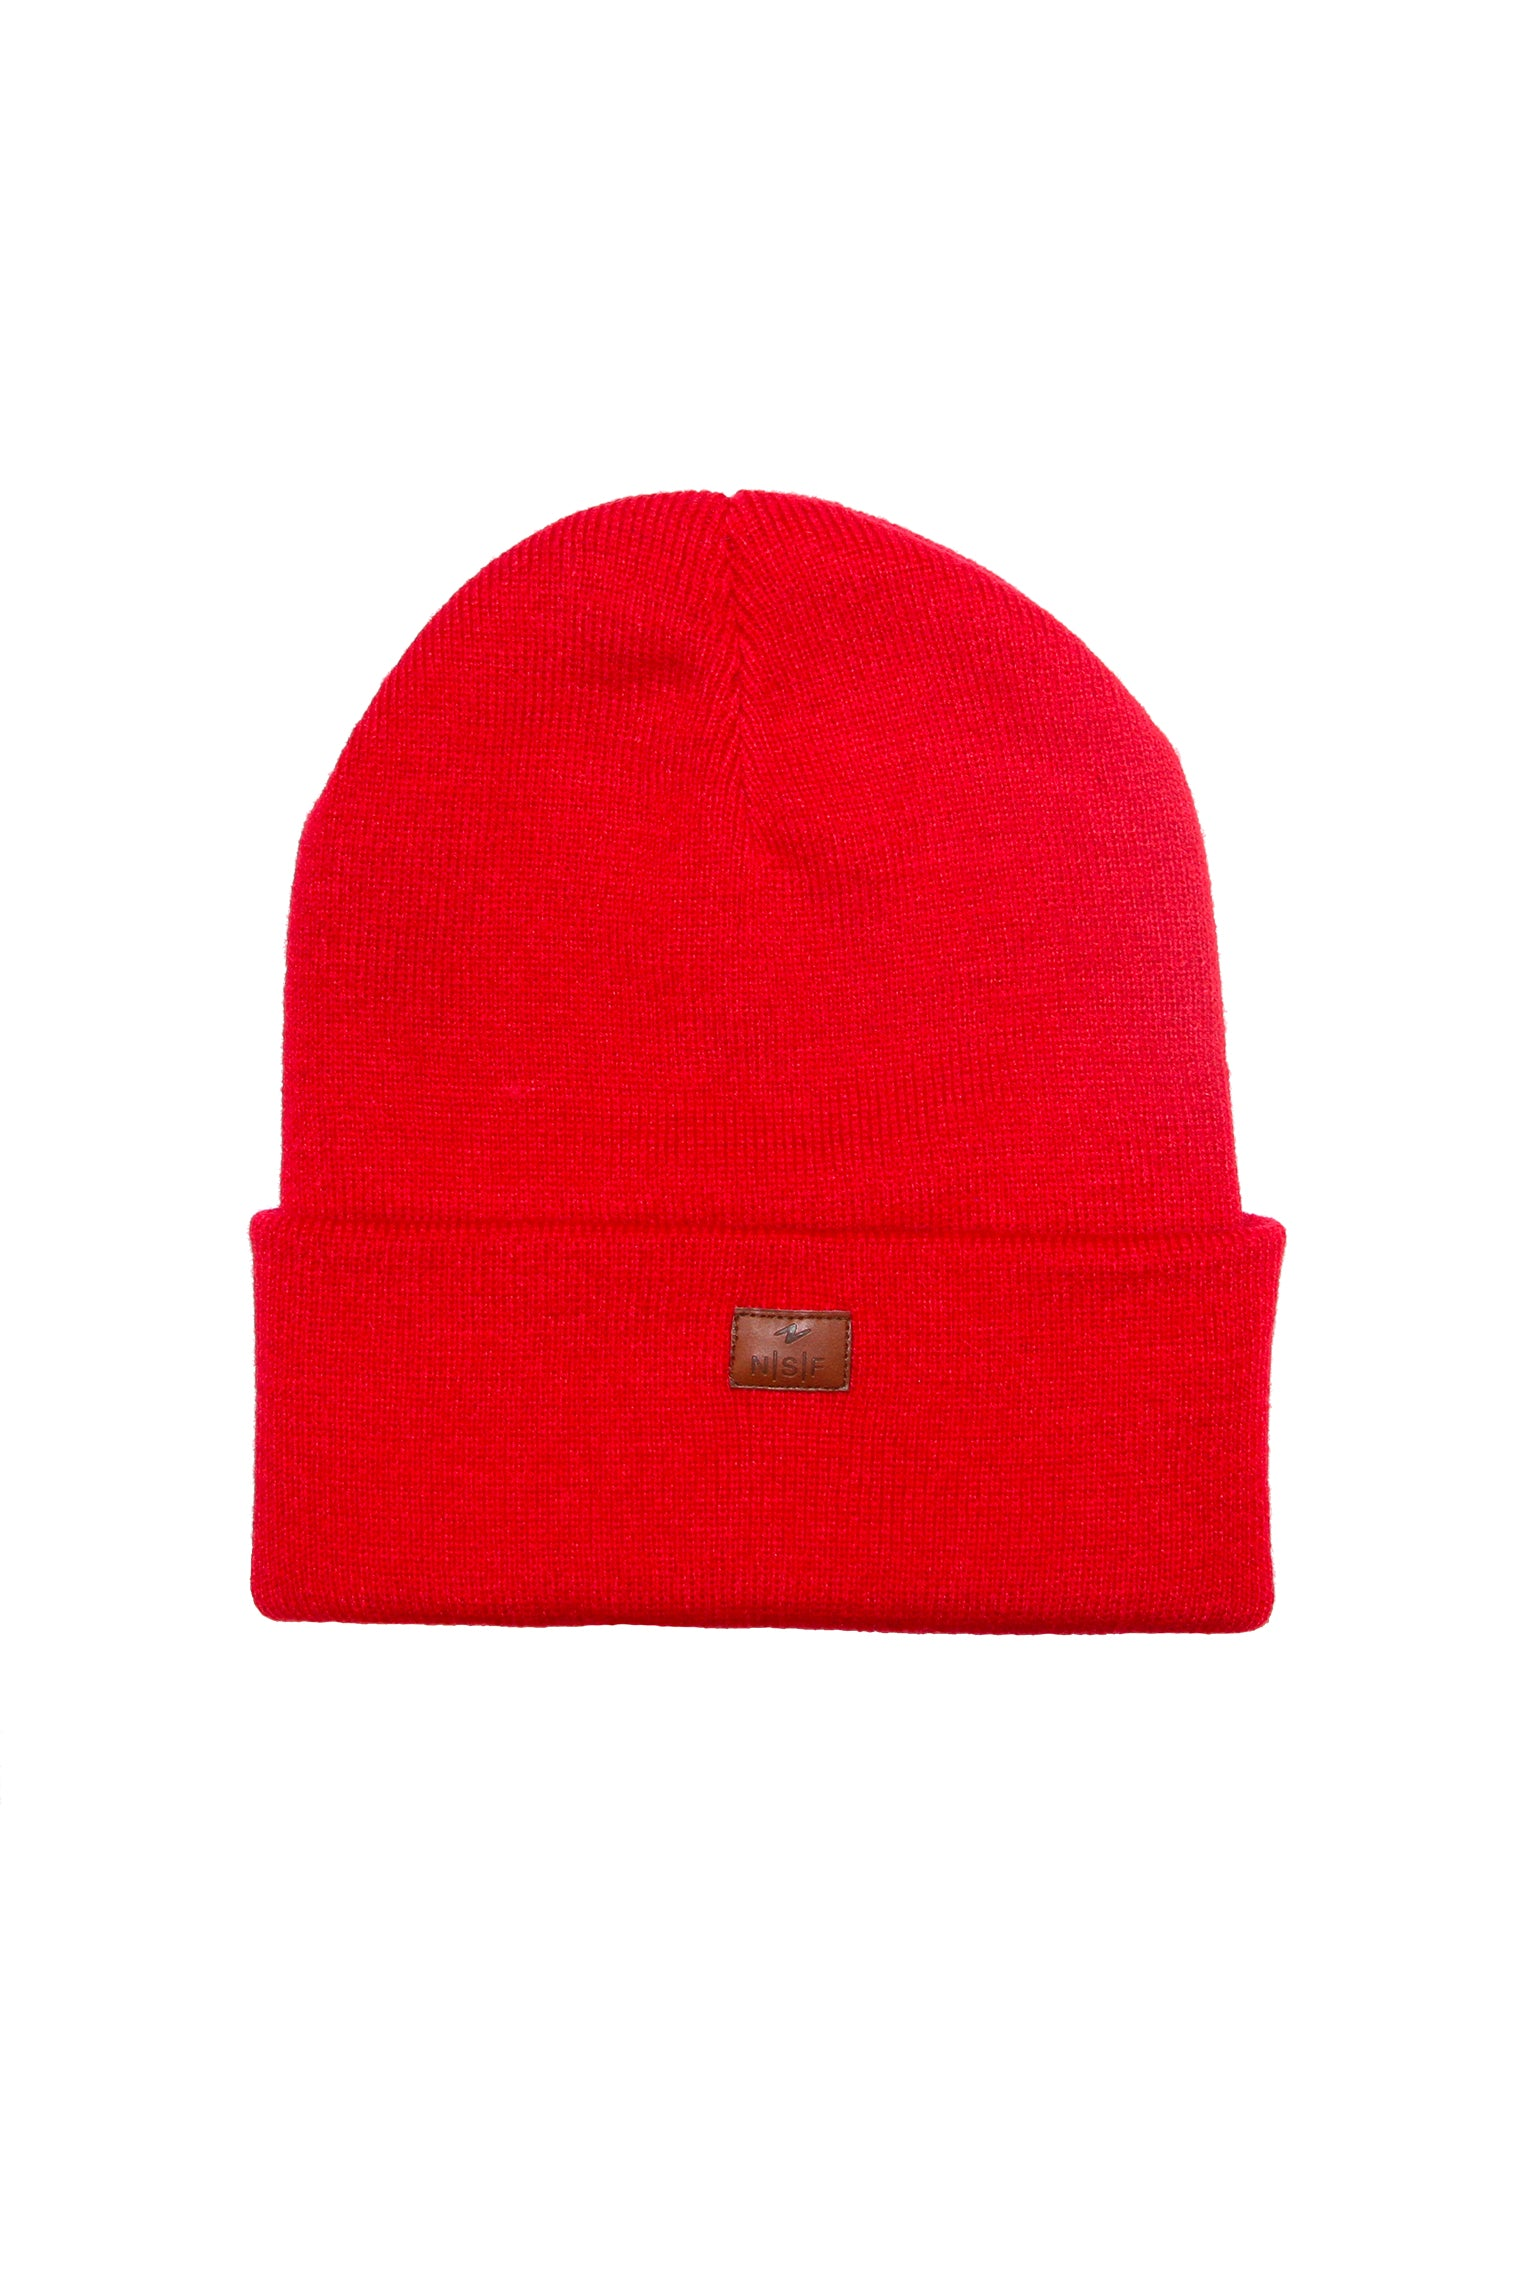 BONNET LÉO ROUGE